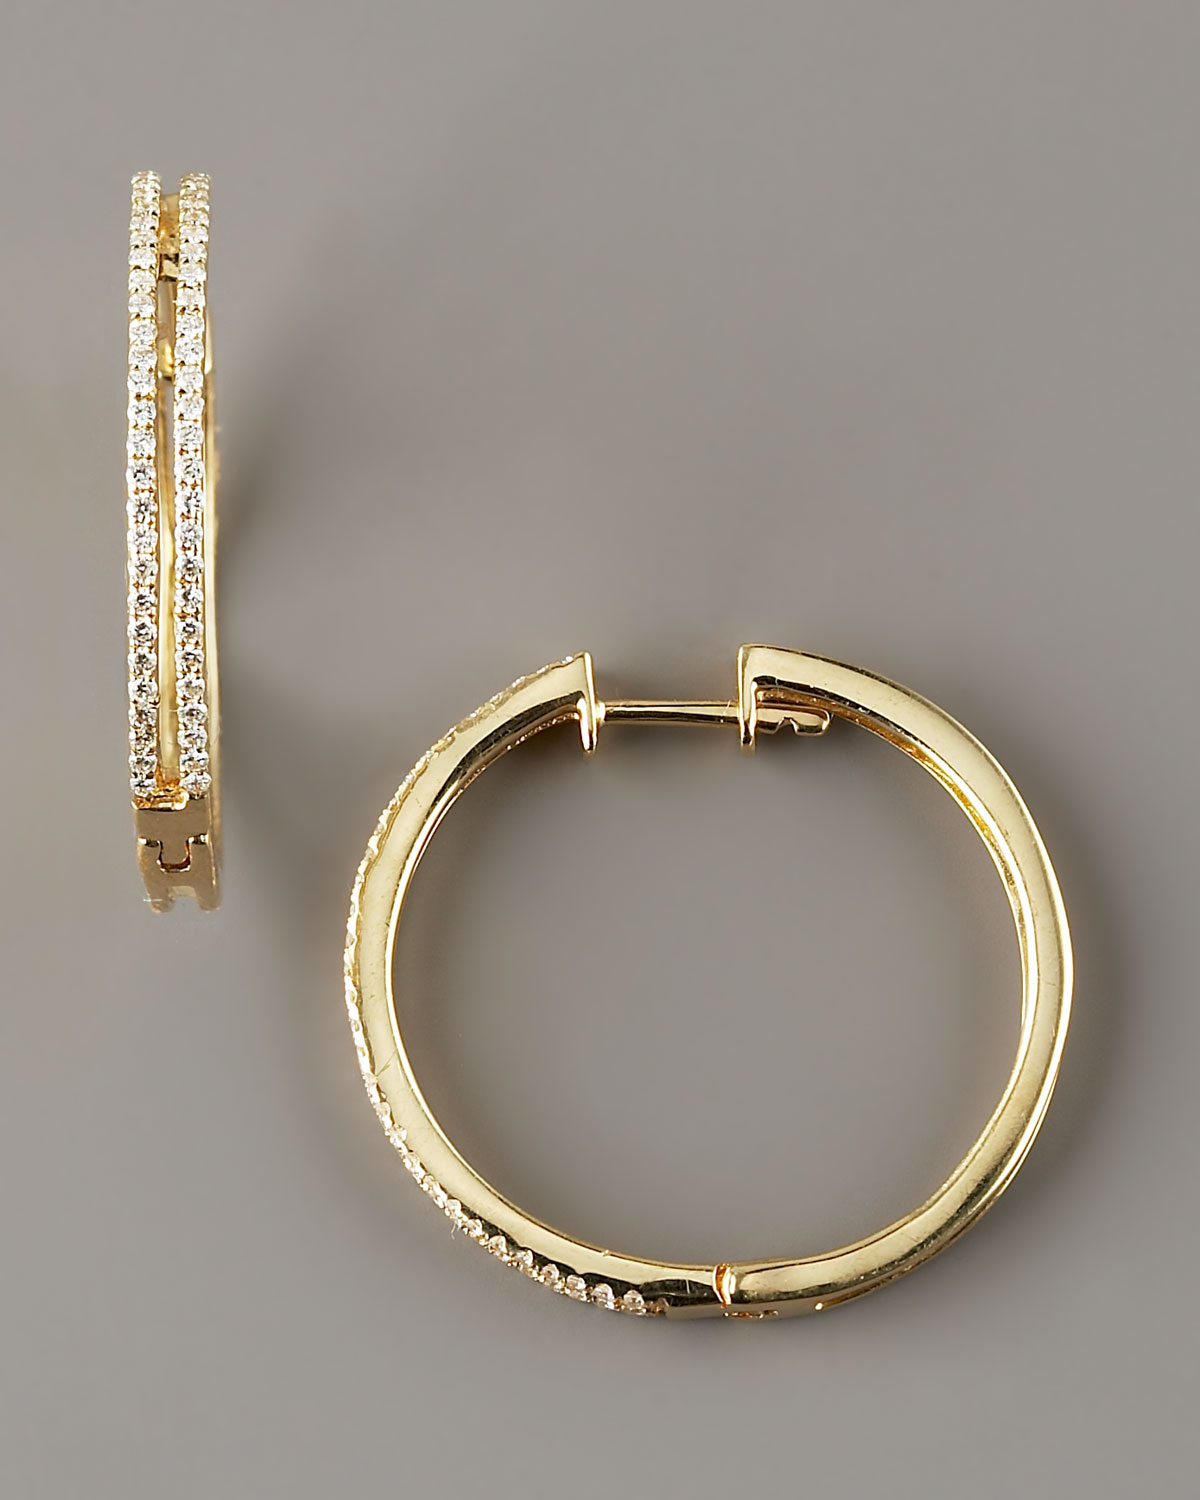 kc designs diamond hoop earrings 14k yellow gold in